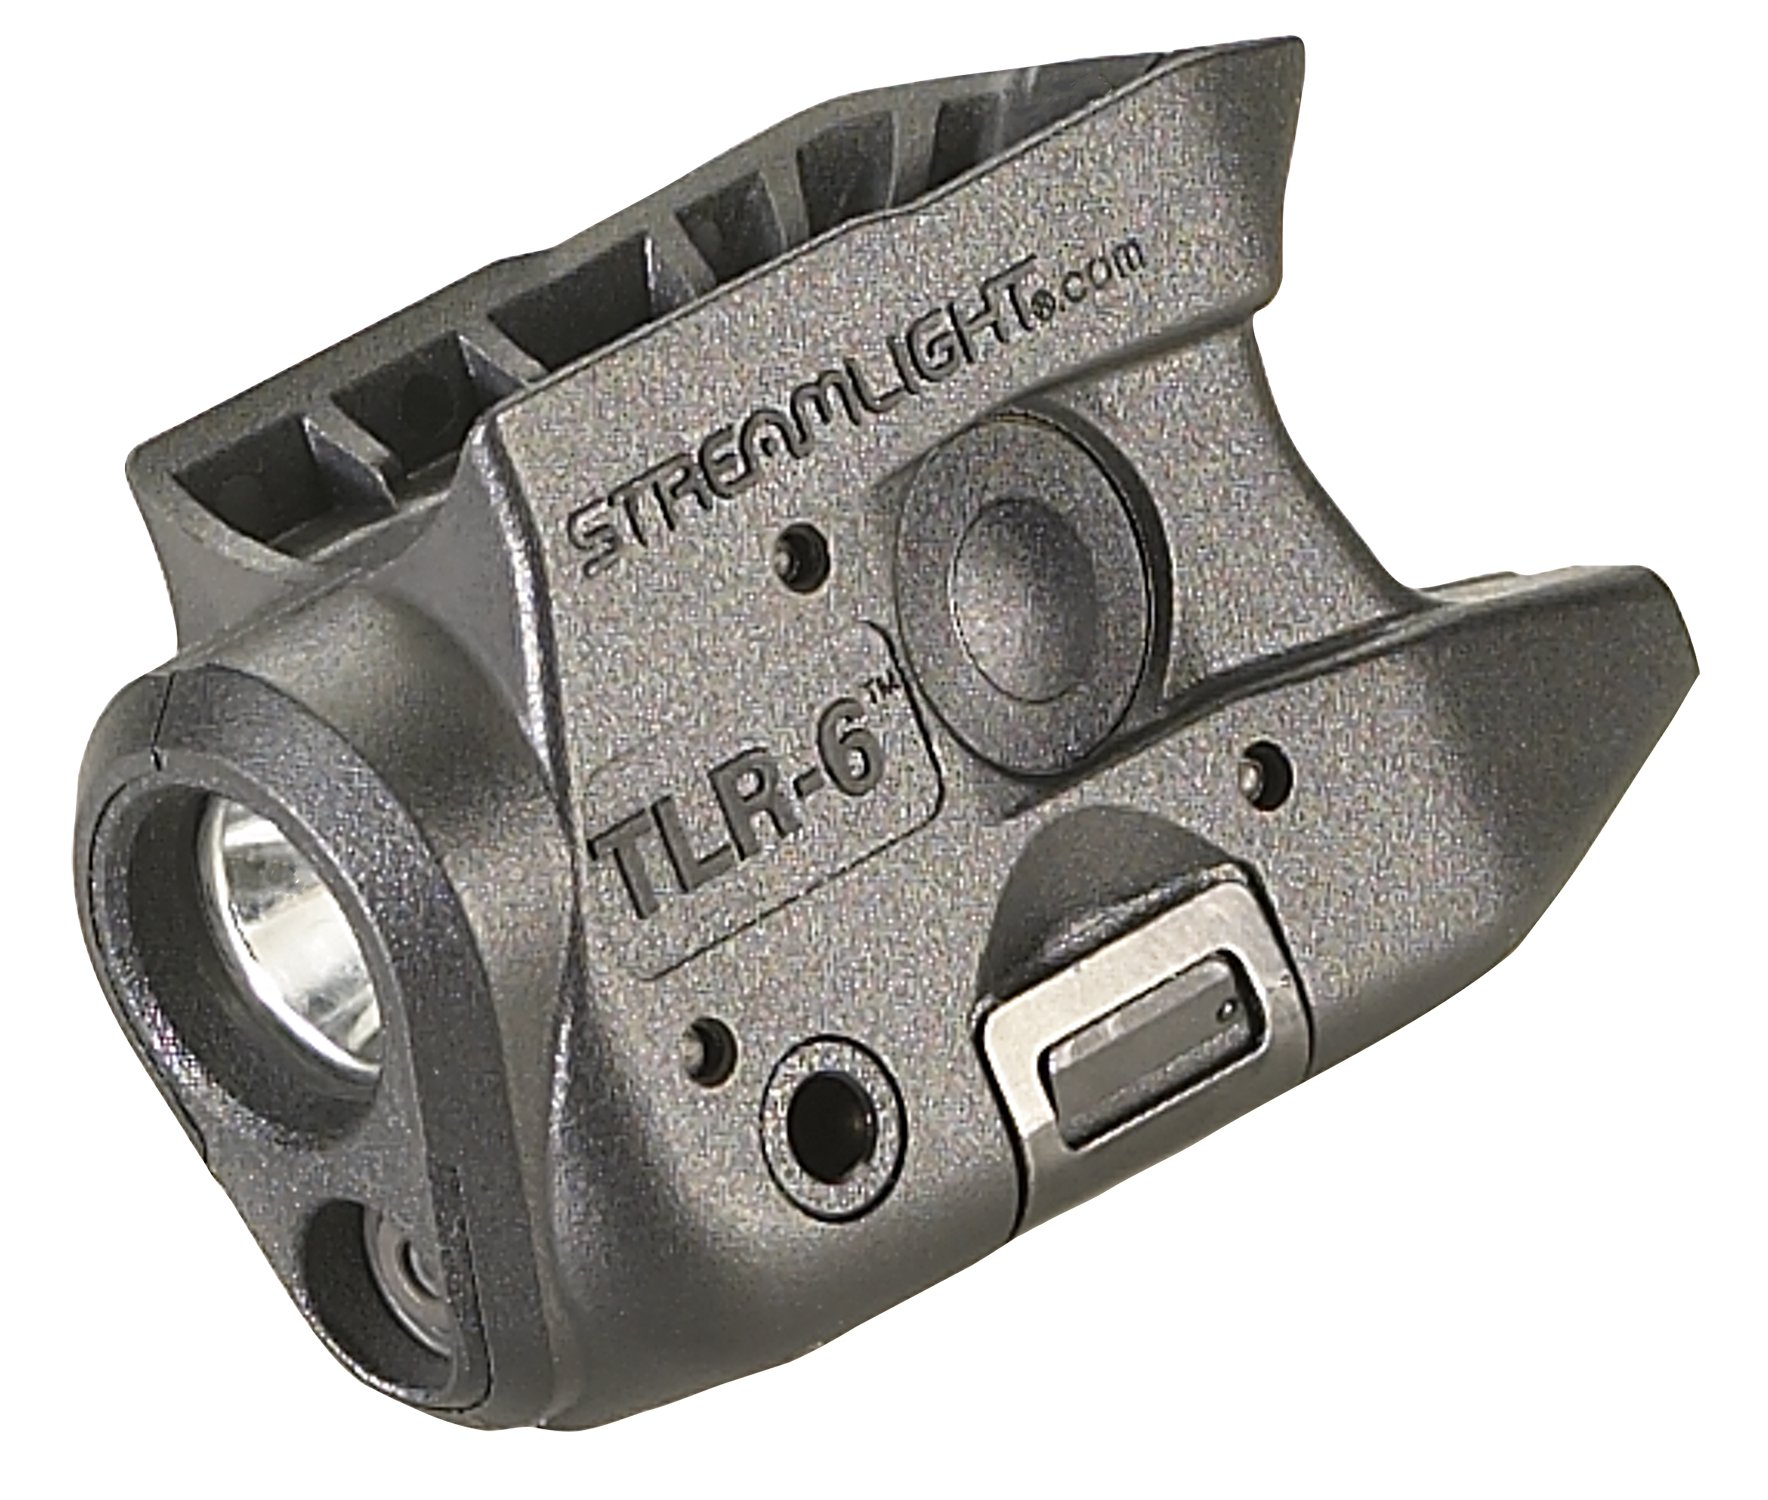 Streamlight 69274 TLR-6 Tactical Pistol Mount Flashlight 100 Lumen with Integrated Red Aiming Laser for KAHR Arms CM/CT/CW/P/PM/TP Both 9 and 40 Only, Black